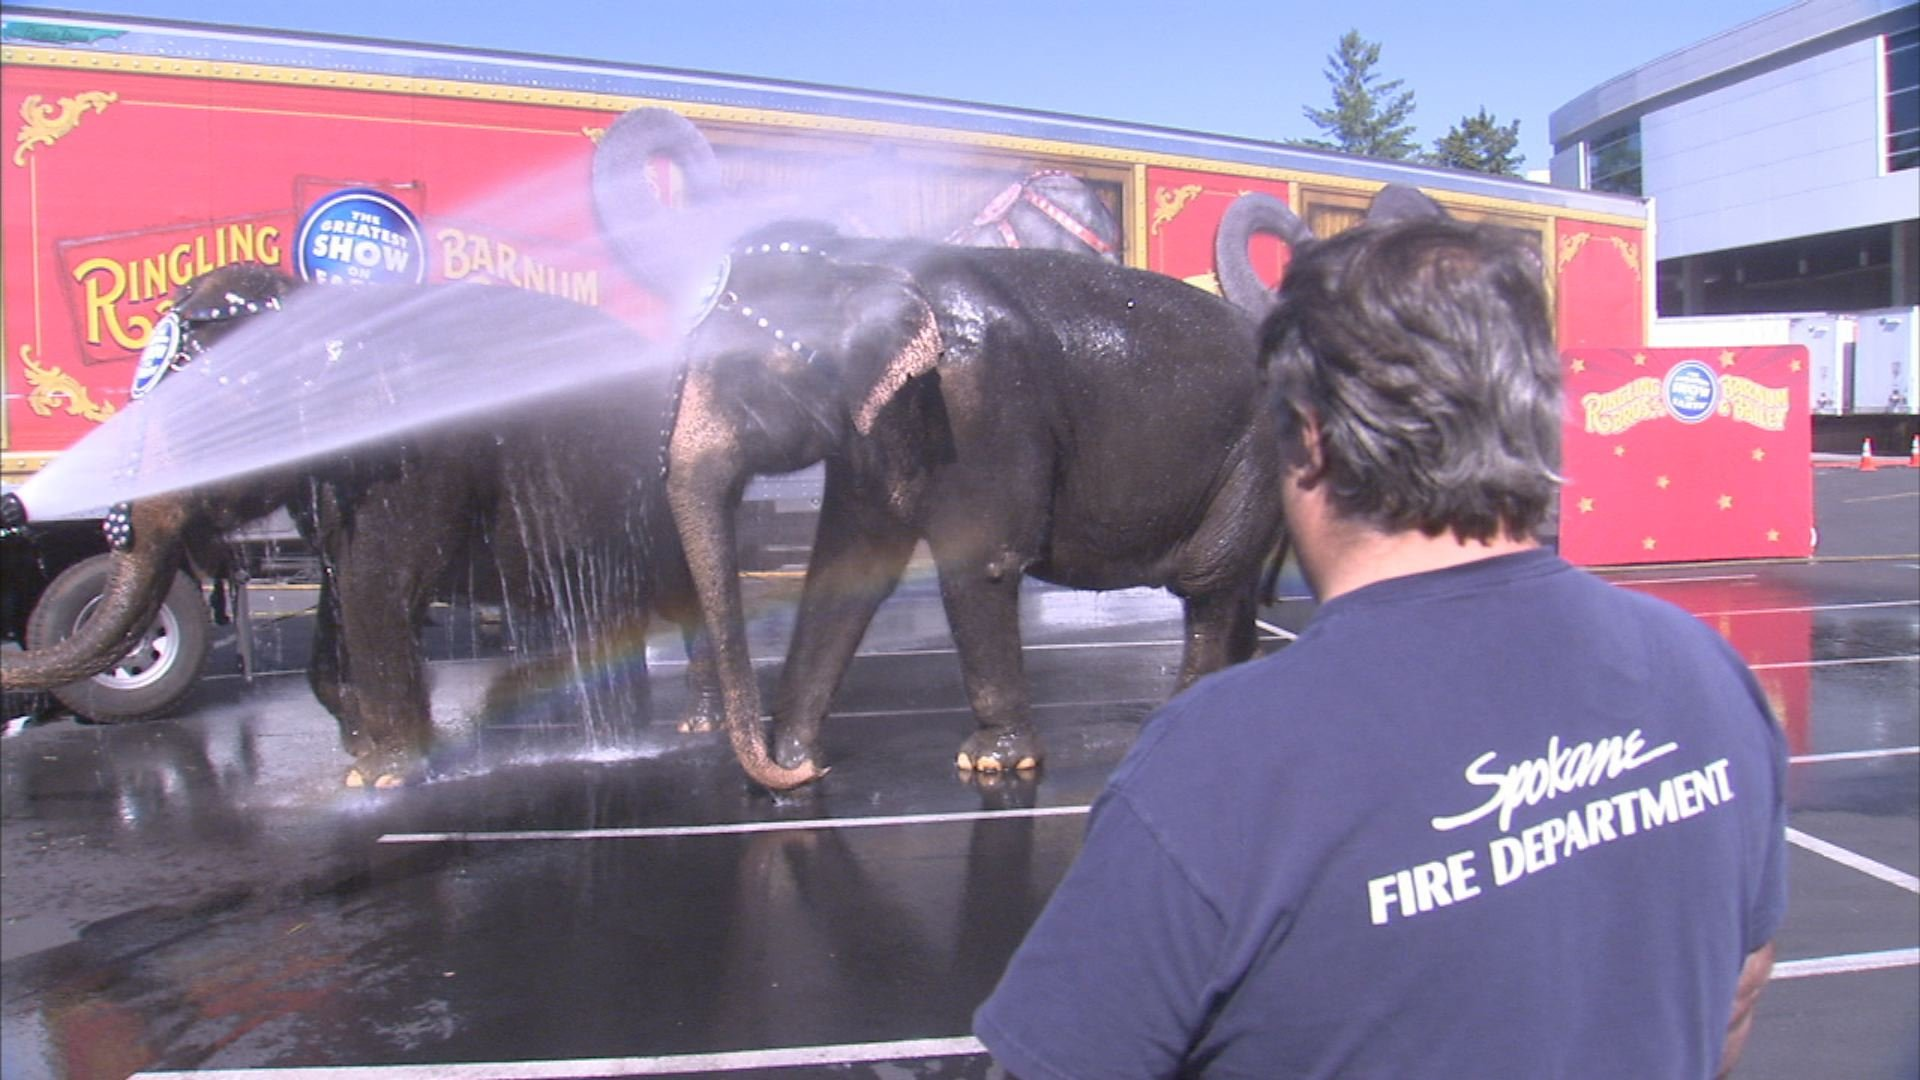 Firefighters from the Spokane Fire Department helped give circus elephants Patty and Carol a bath on Wednesday at the Spokane Arena